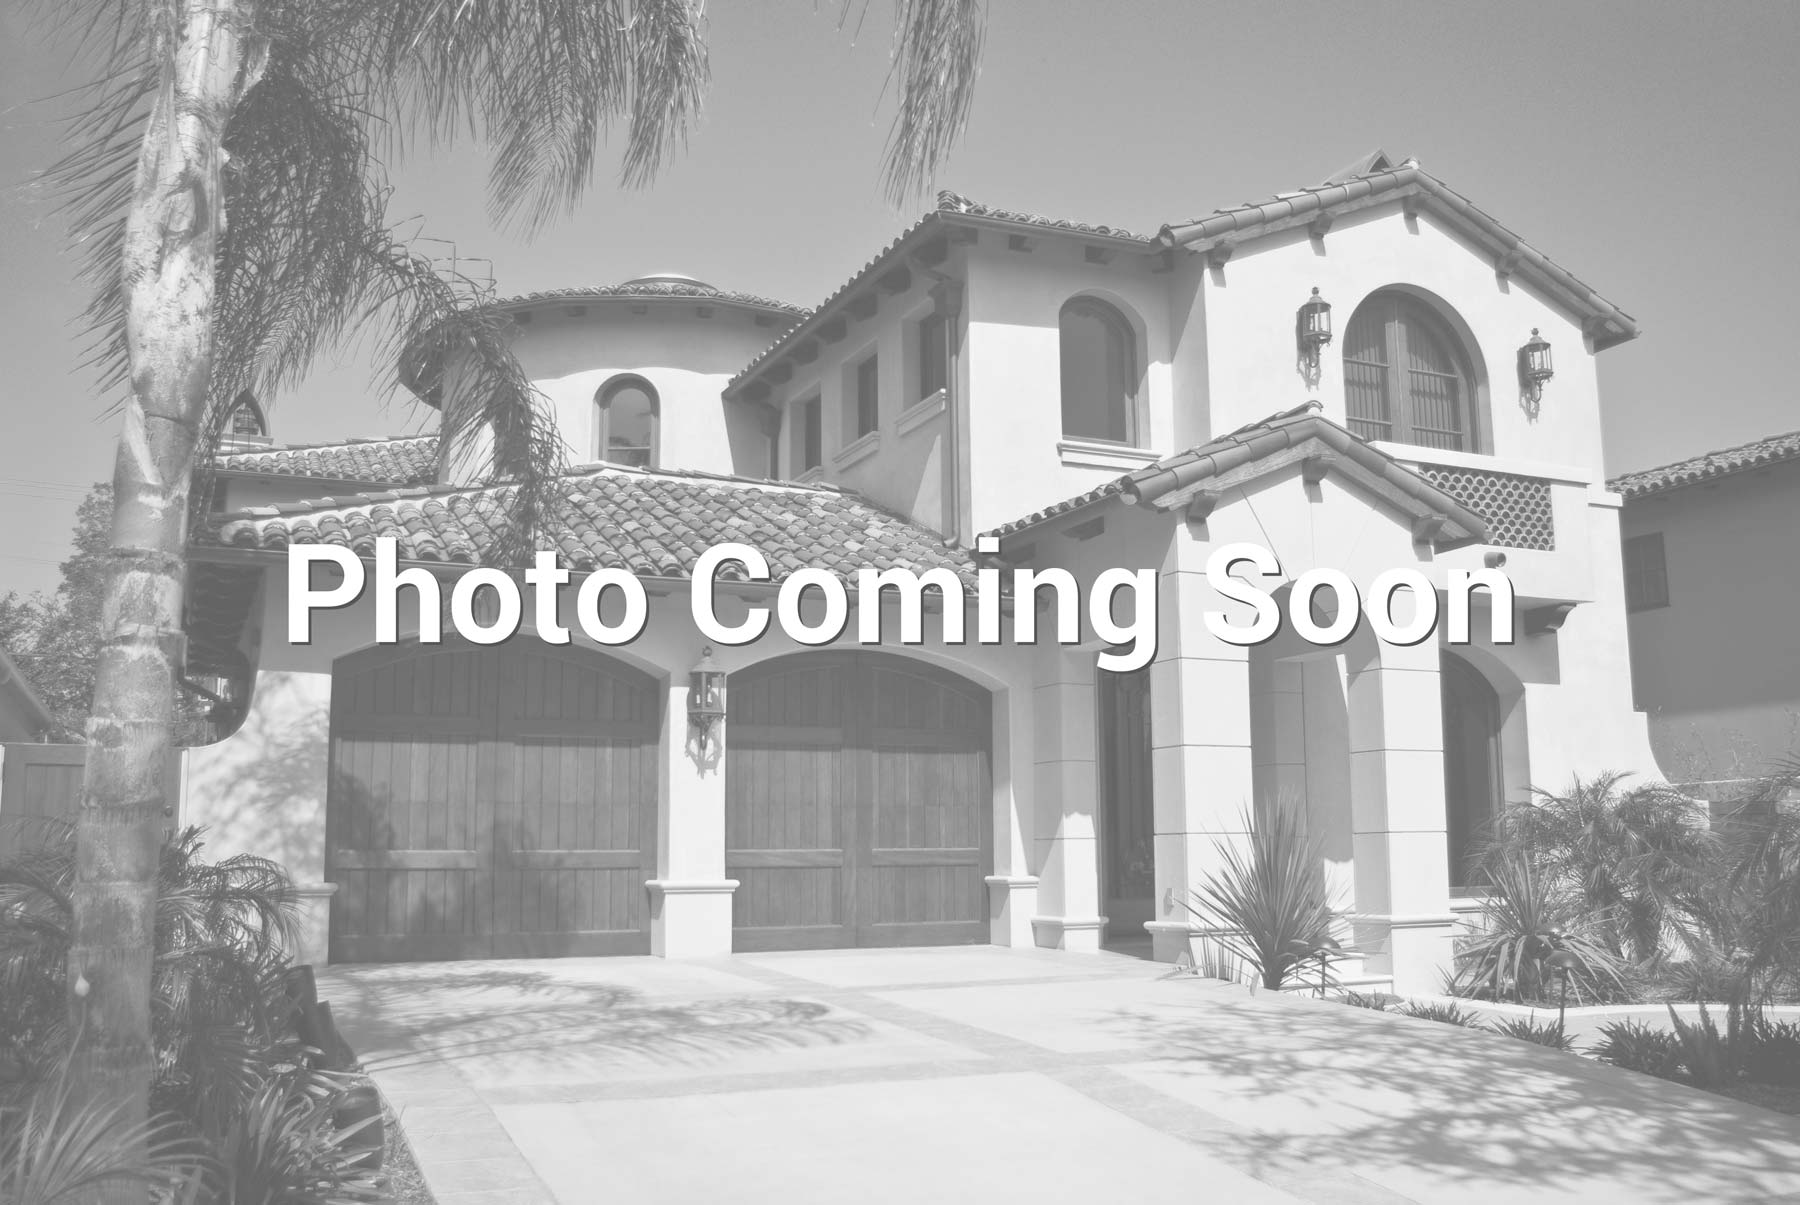 $1,600,000 - 5Br/5Ba - Home for Sale in Las Ventanas, Cave Creek